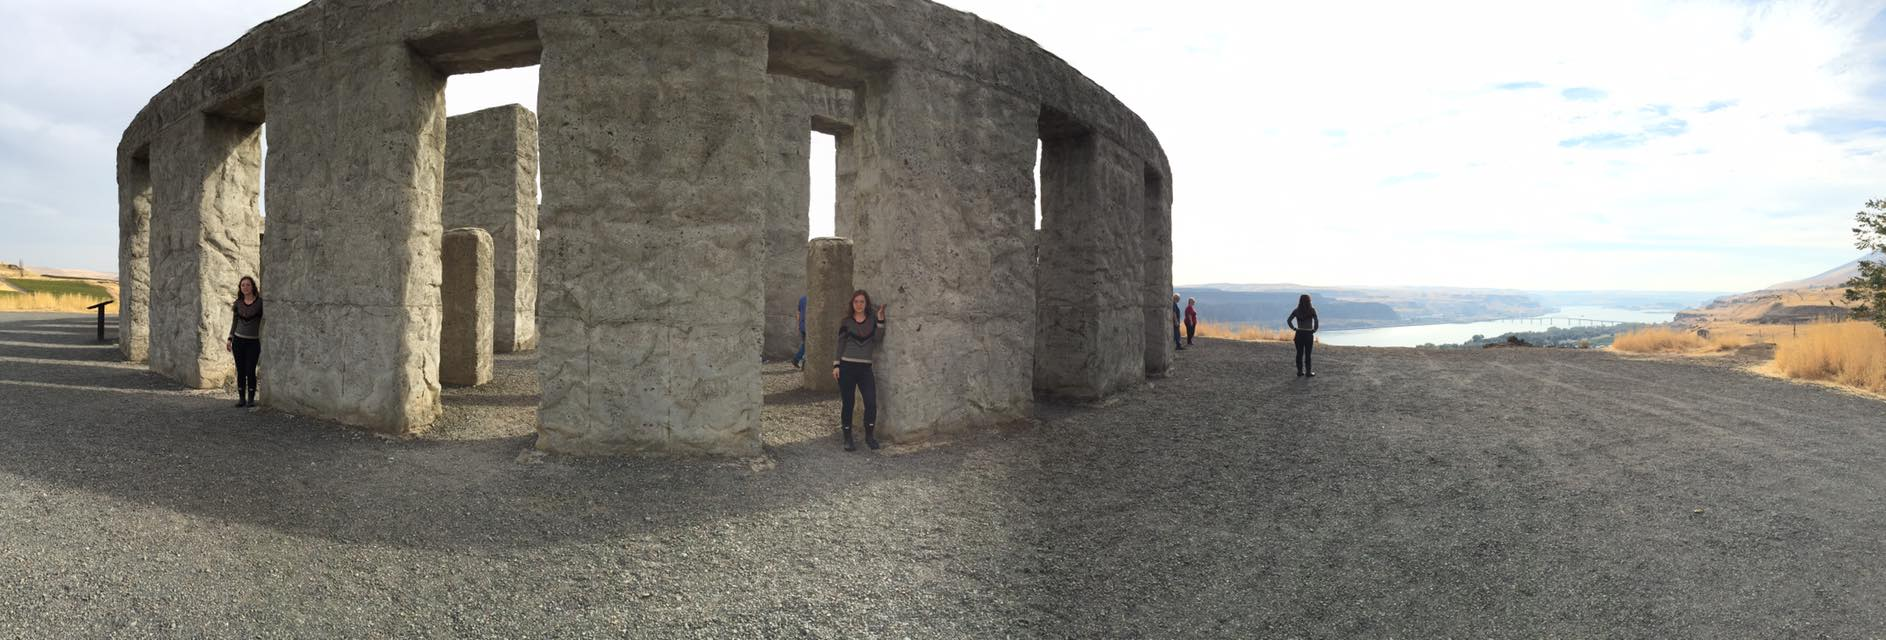 Jenn Zahrt, PhD at Stonehenge WA